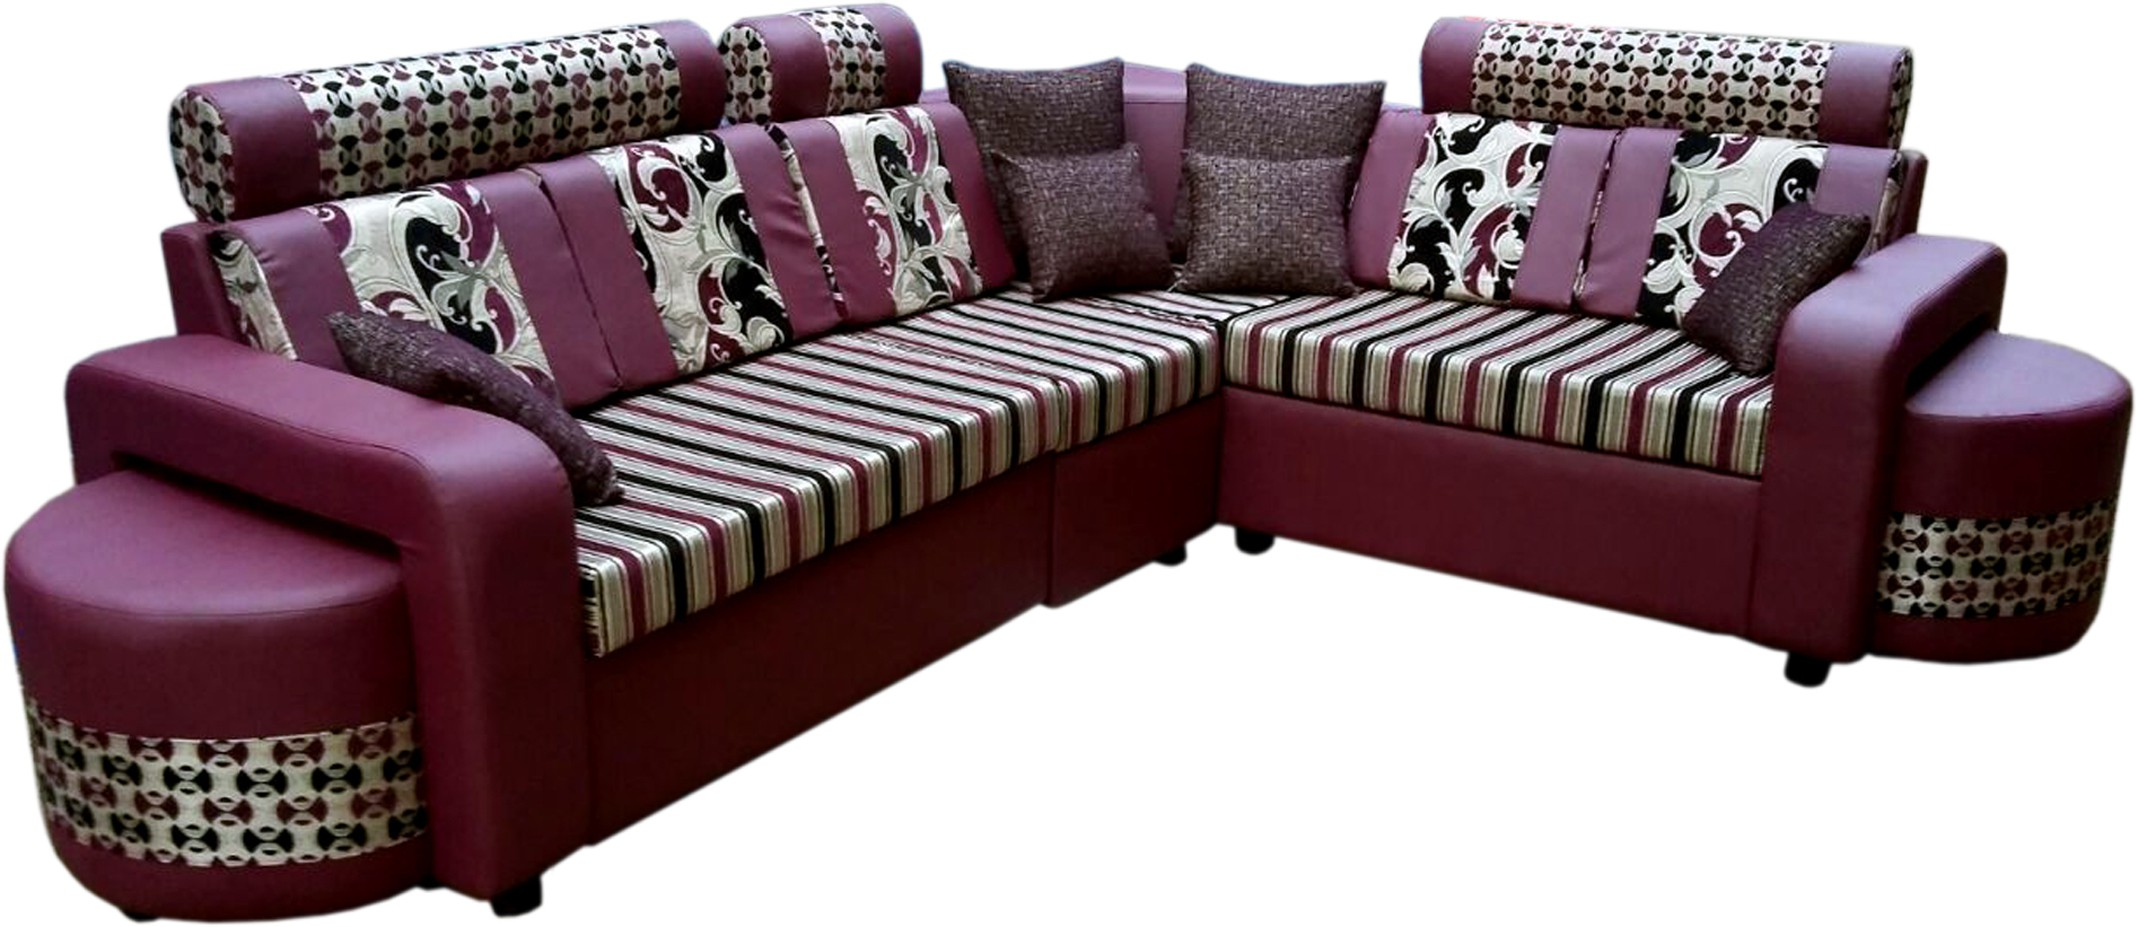 View Sethu Furniture Fabric 7 Seater Sofa(Finish Color - Purple) Furniture (Sethu Furniture)